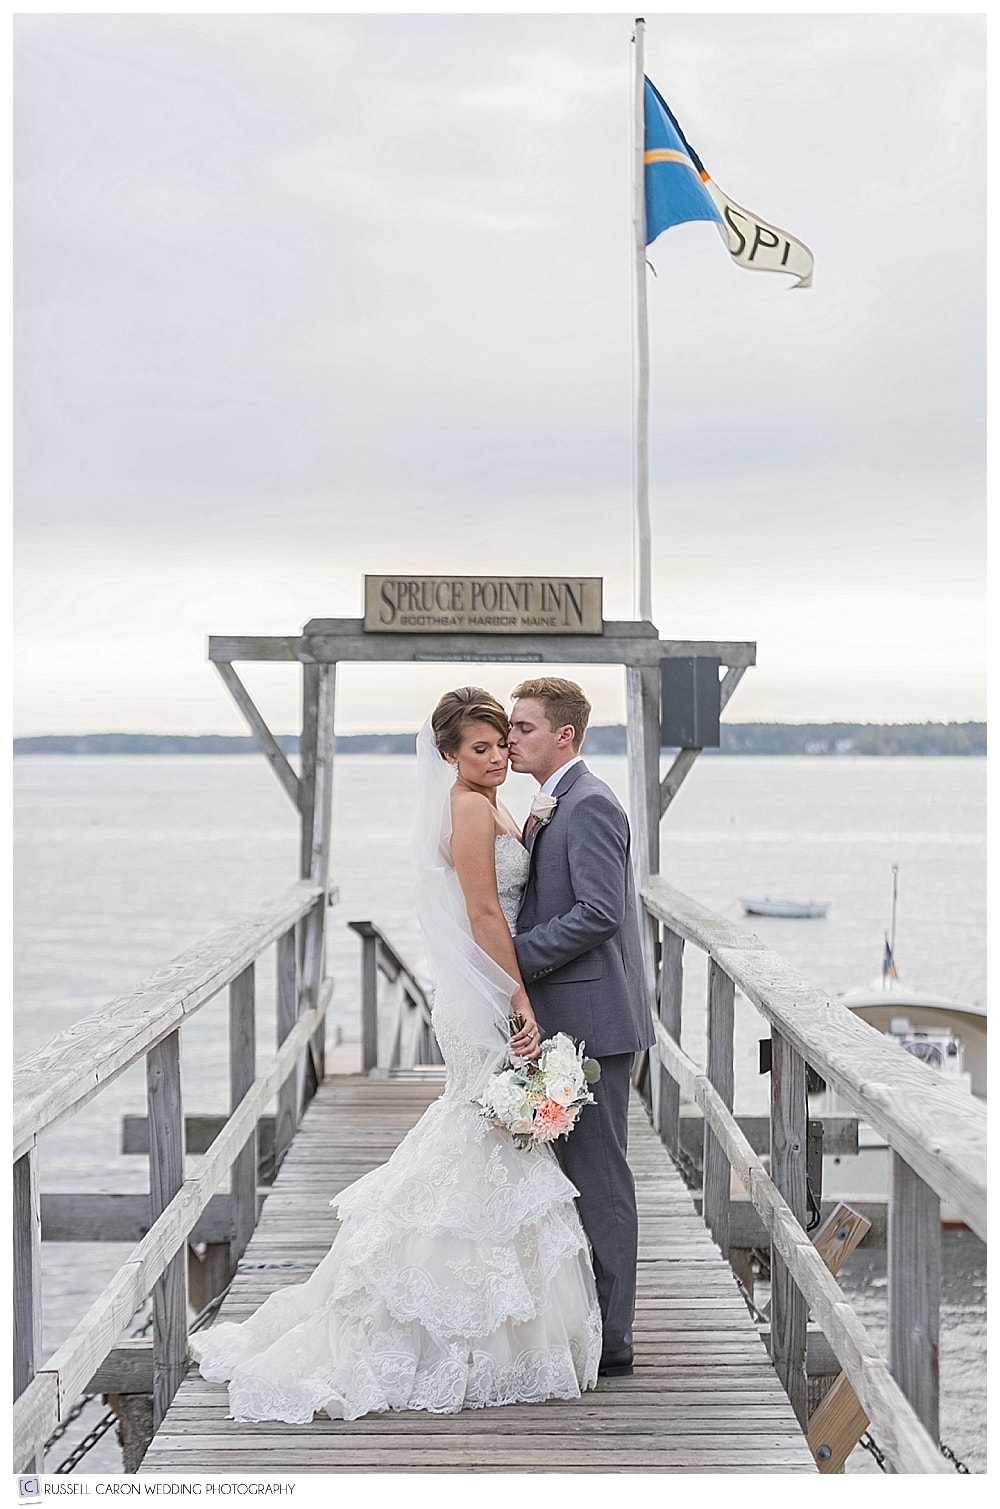 bride and groom on the spruce point inn dock, Boothbay Harbor, Maine